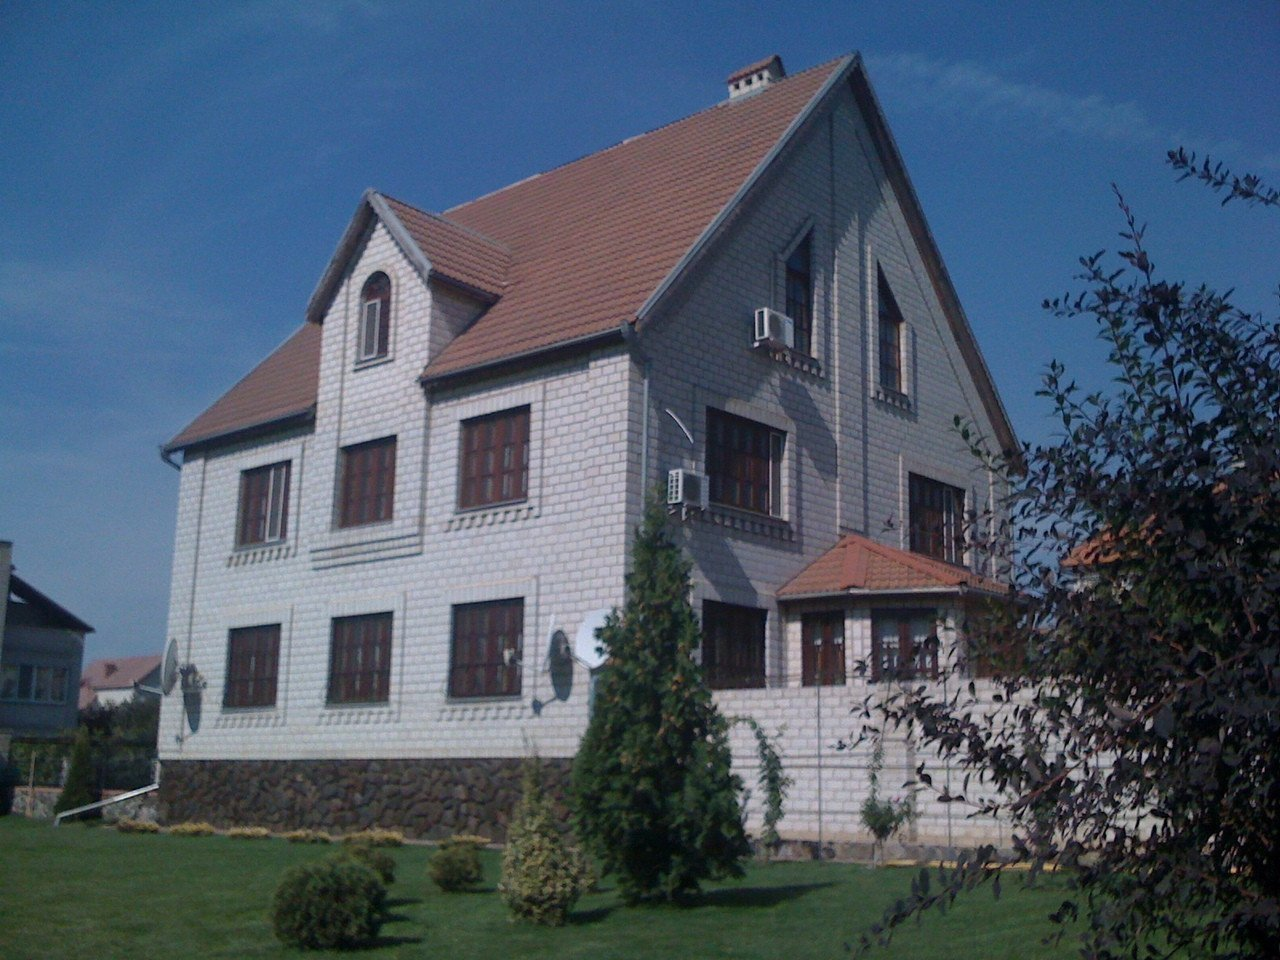 Photo: Sale cottage in Южноукраинск. Announcement № 4837